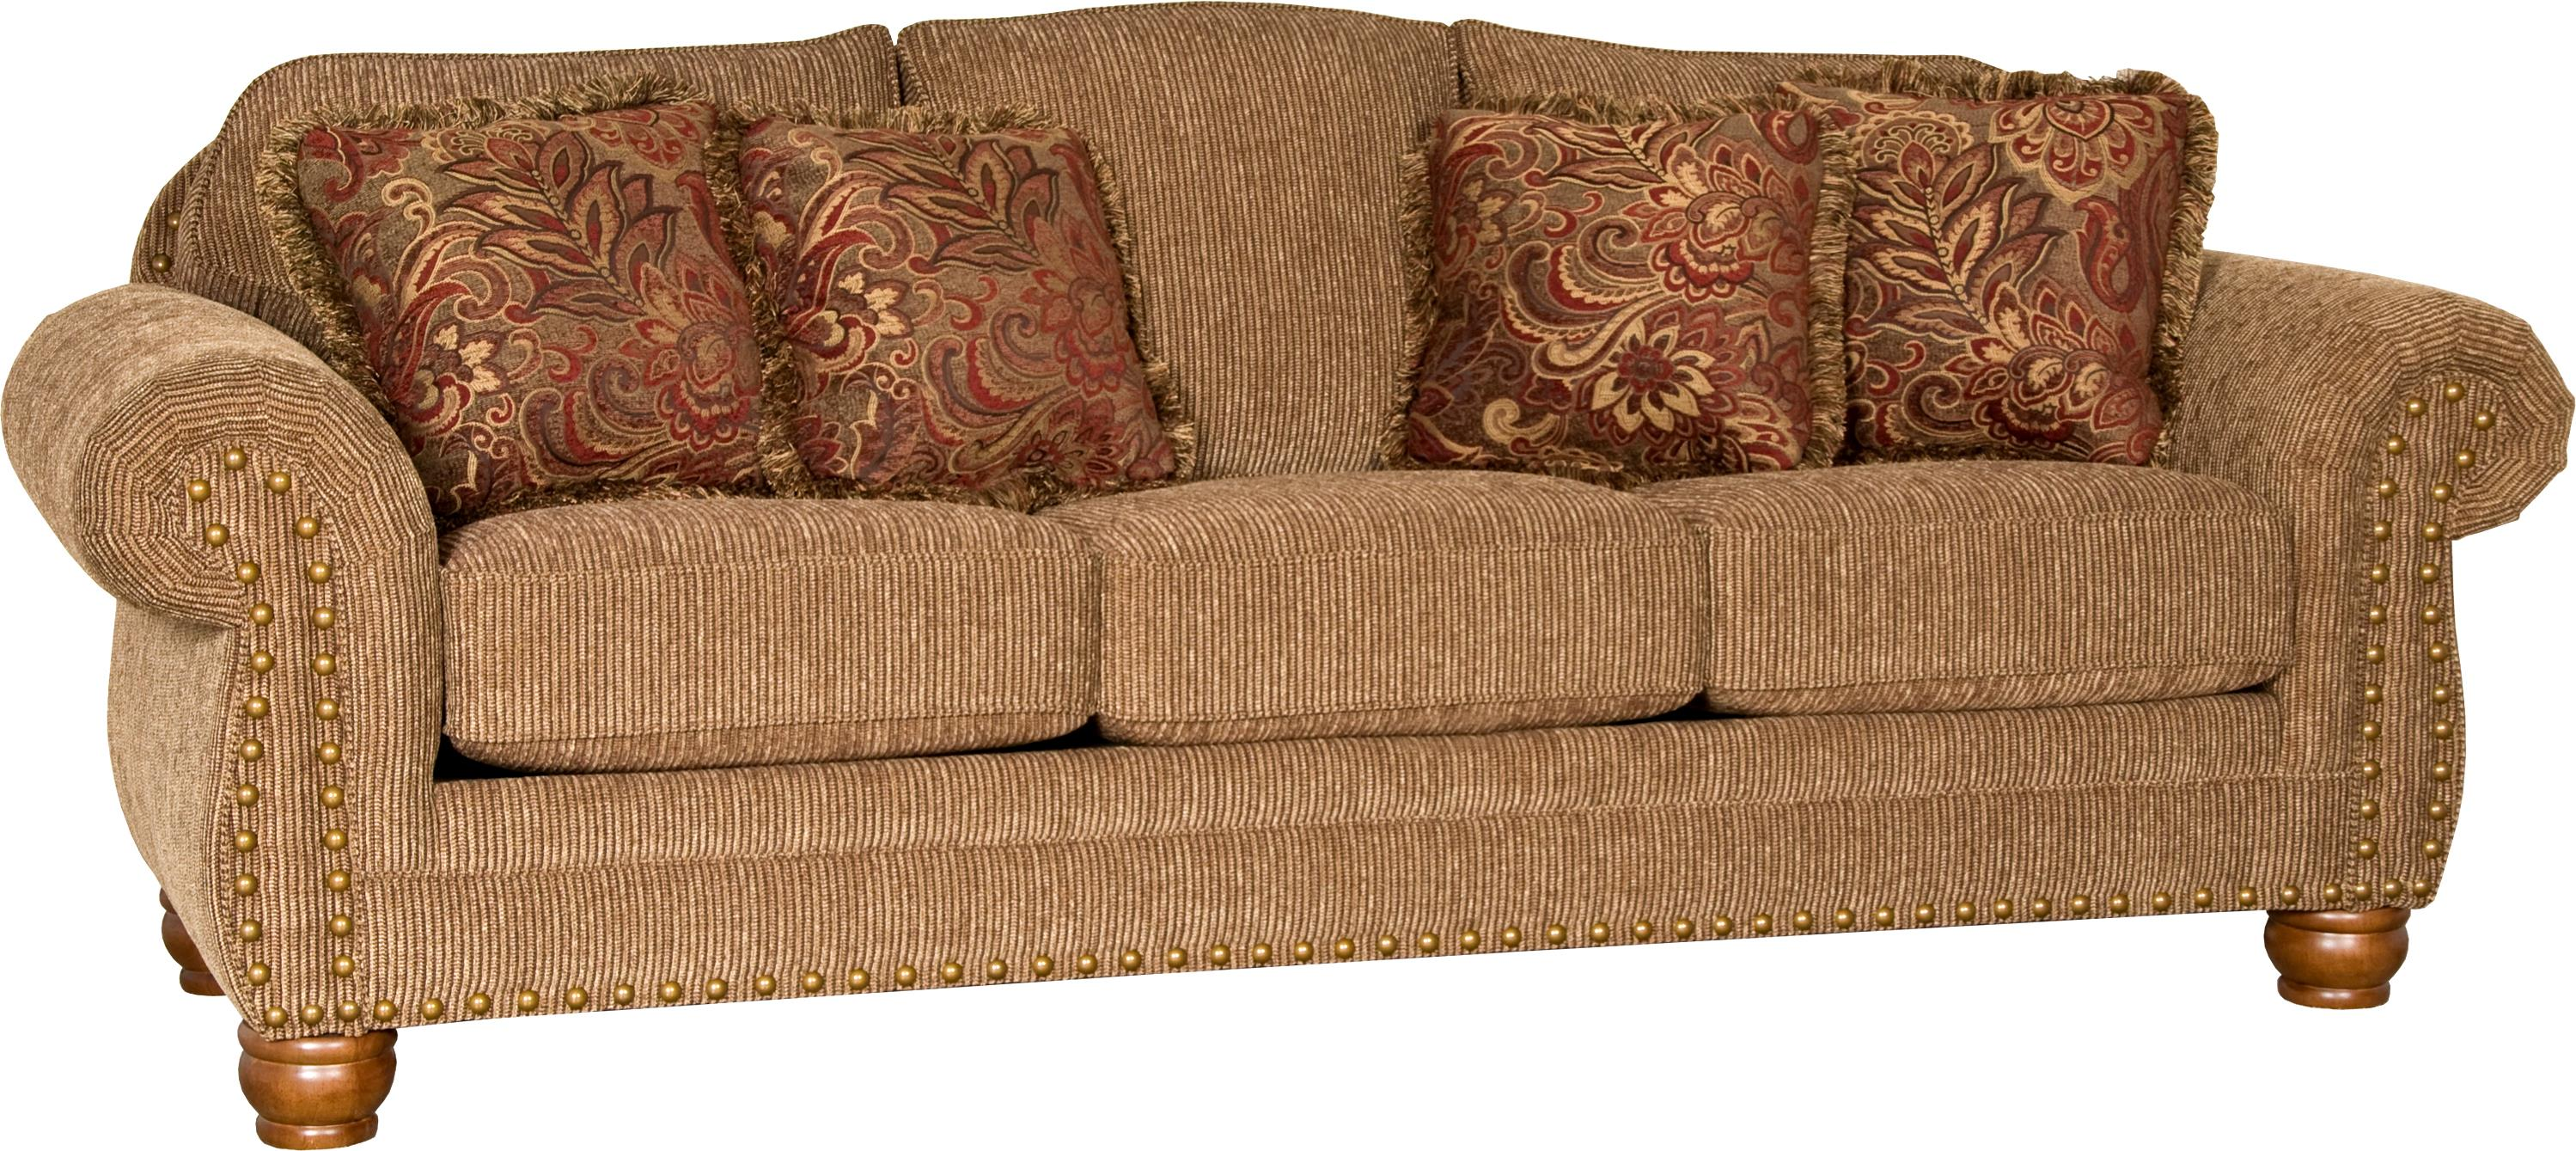 3180 Sofa by Mayo at Wilcox Furniture